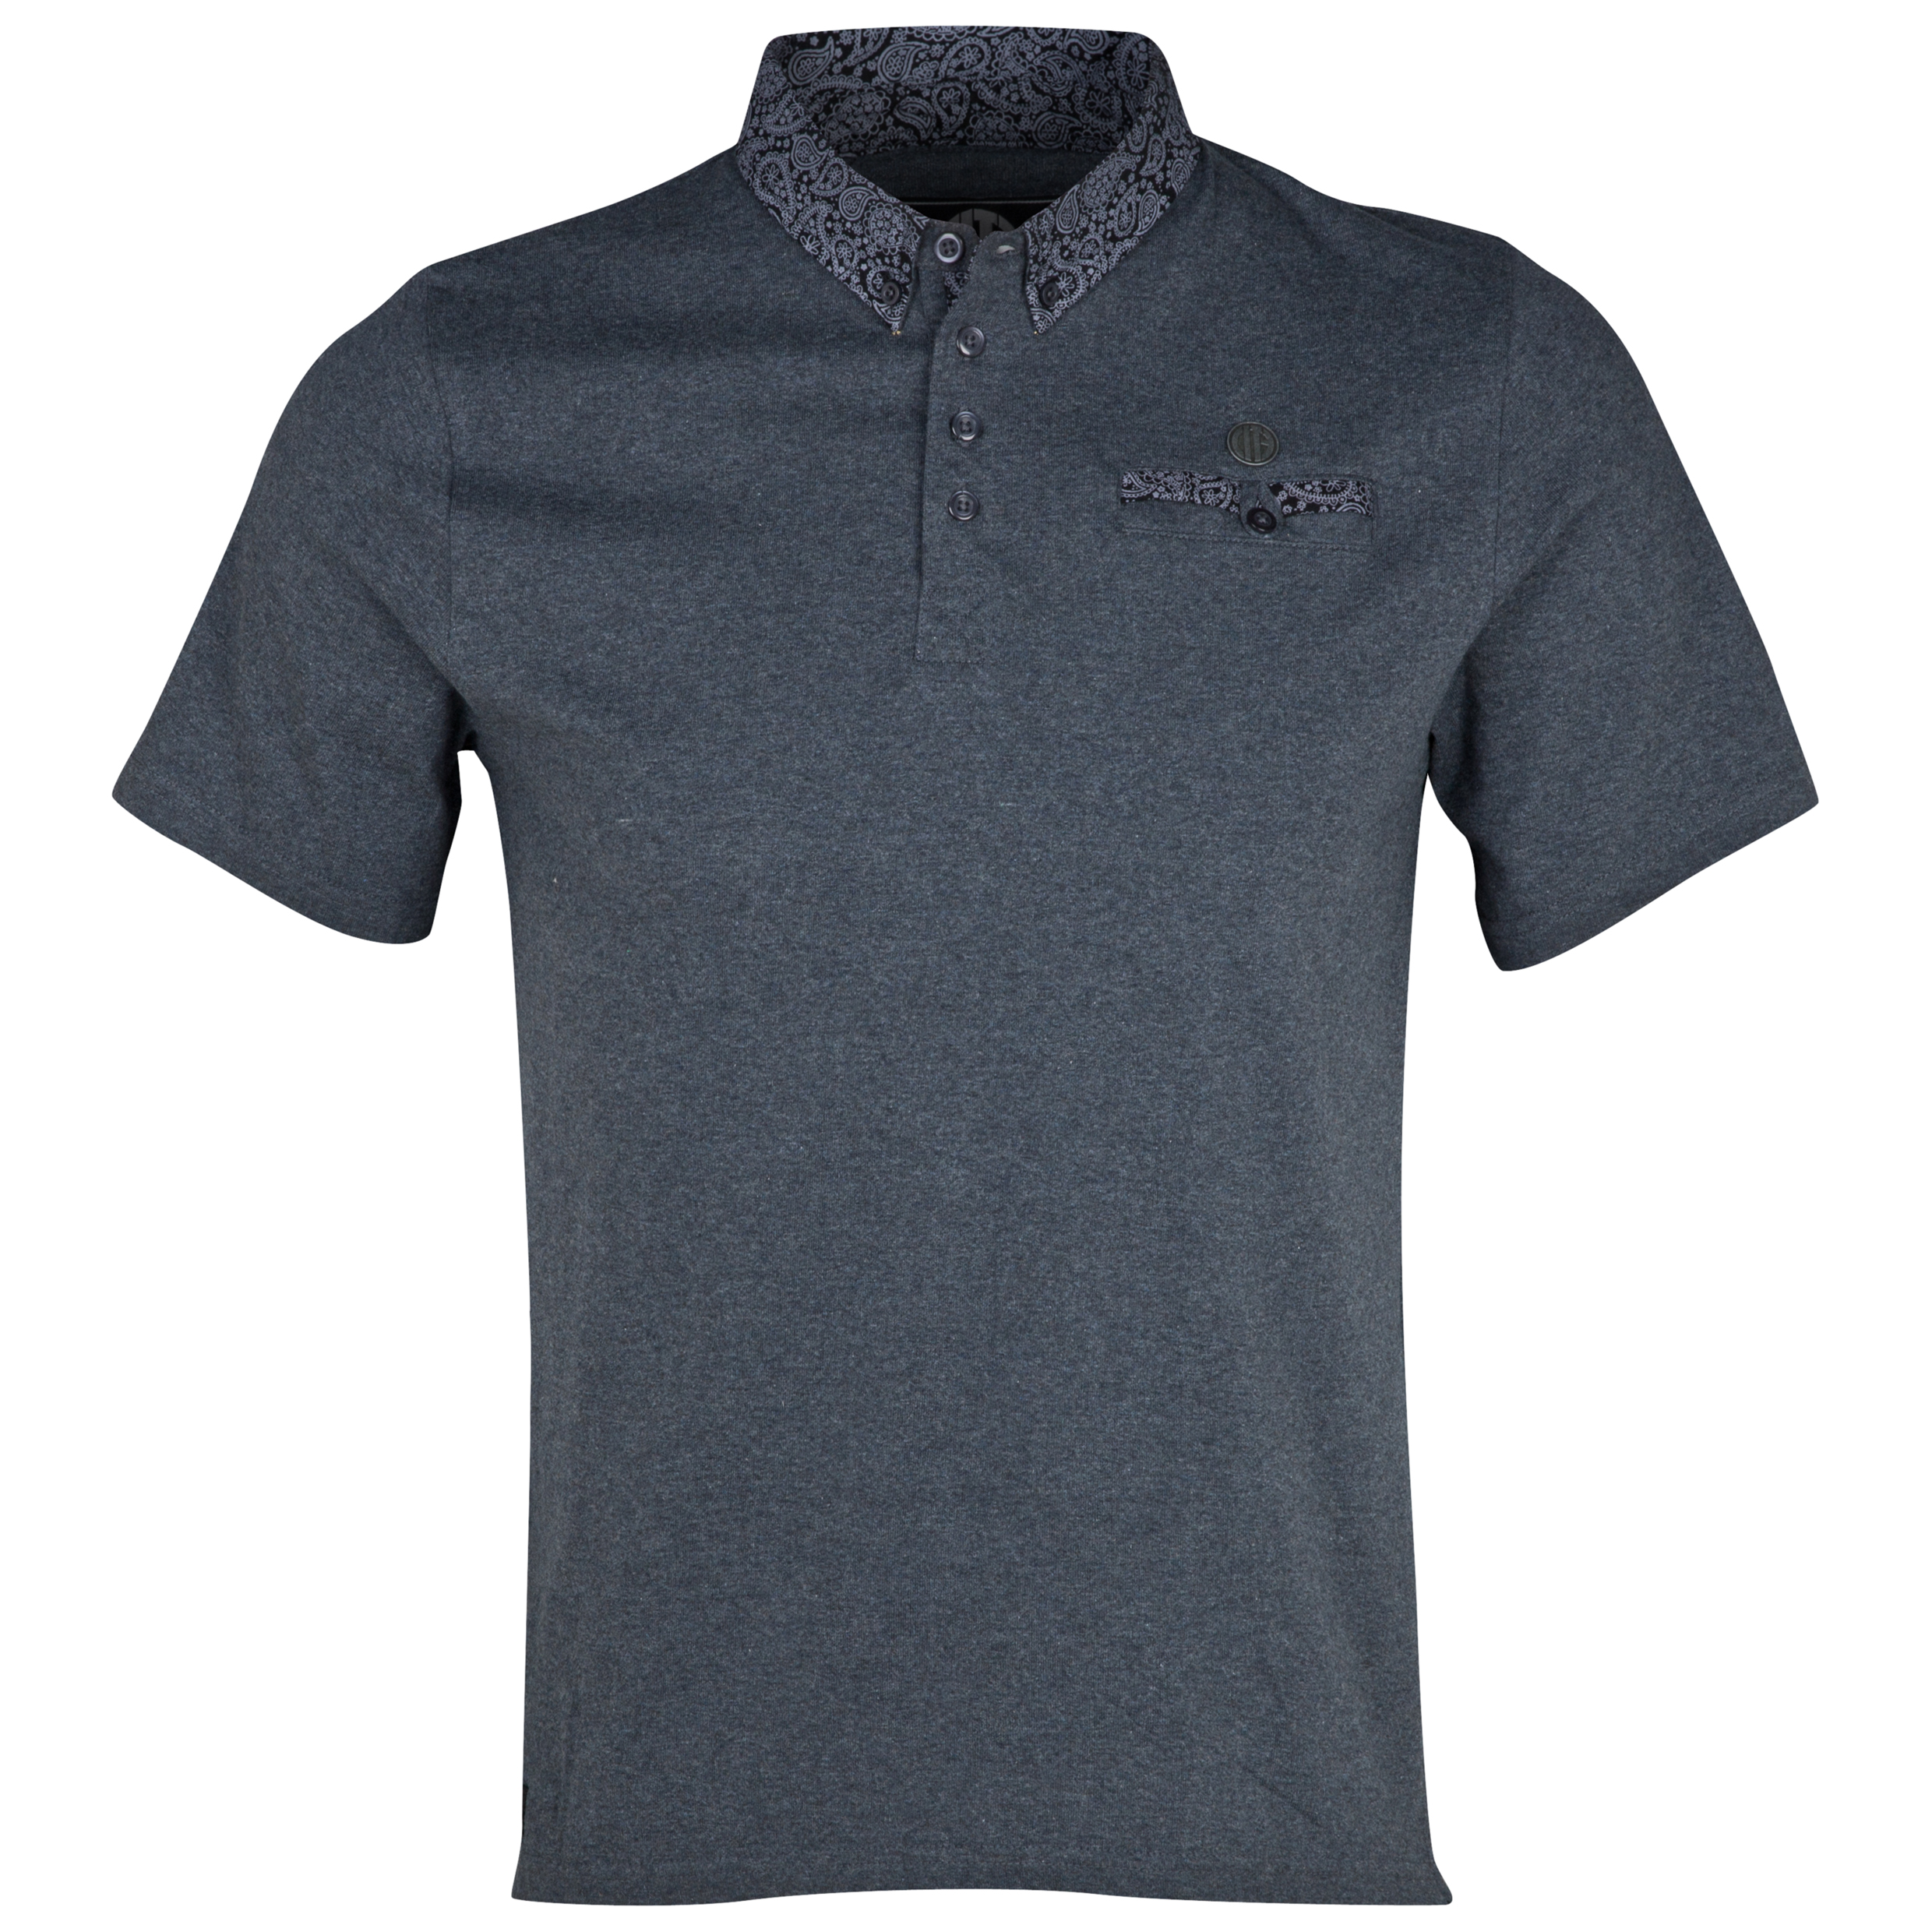 Manchester City Skye Polo Shirt - Mens Charcoal